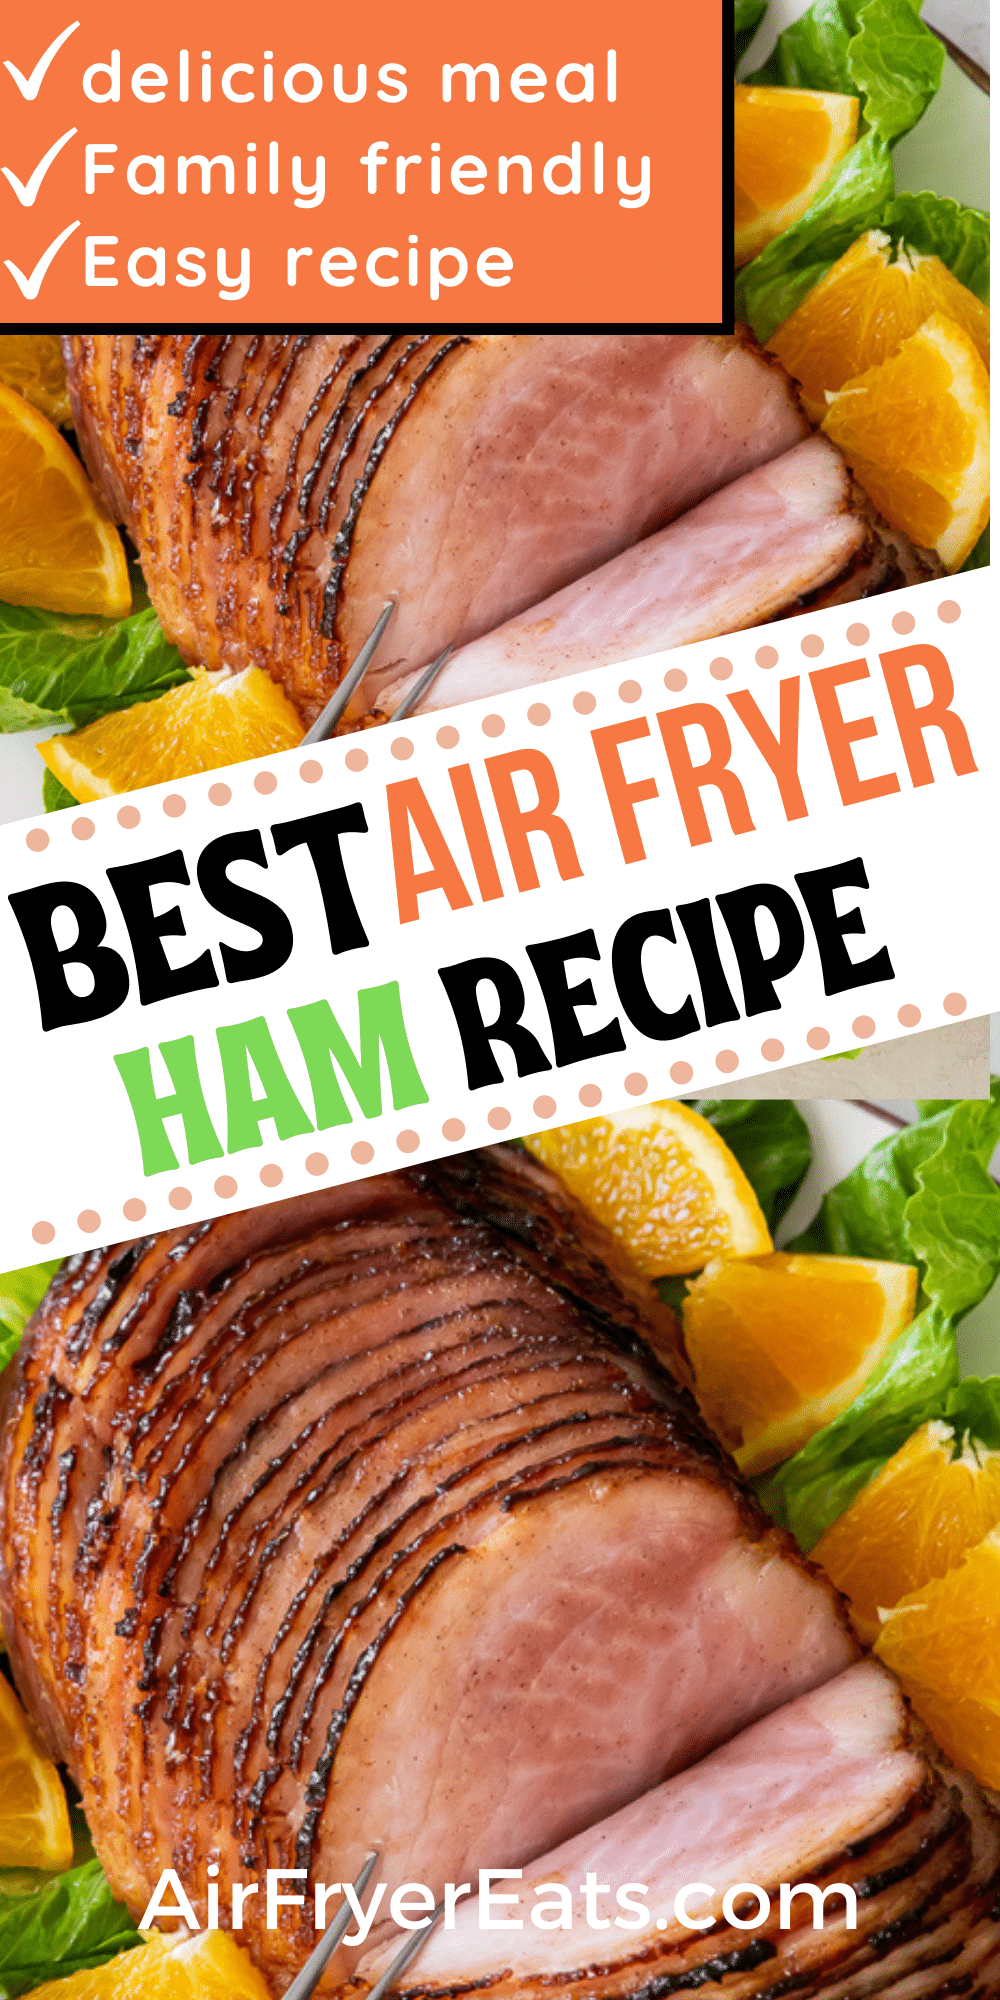 Air Fryer Ham is a time saving way to cook a ham for a holiday dinner or weekend meal. A homemade maple glaze makes this air fryer ham recipe the best you'll find. #airfryerham #holidayham via @vegetarianmamma